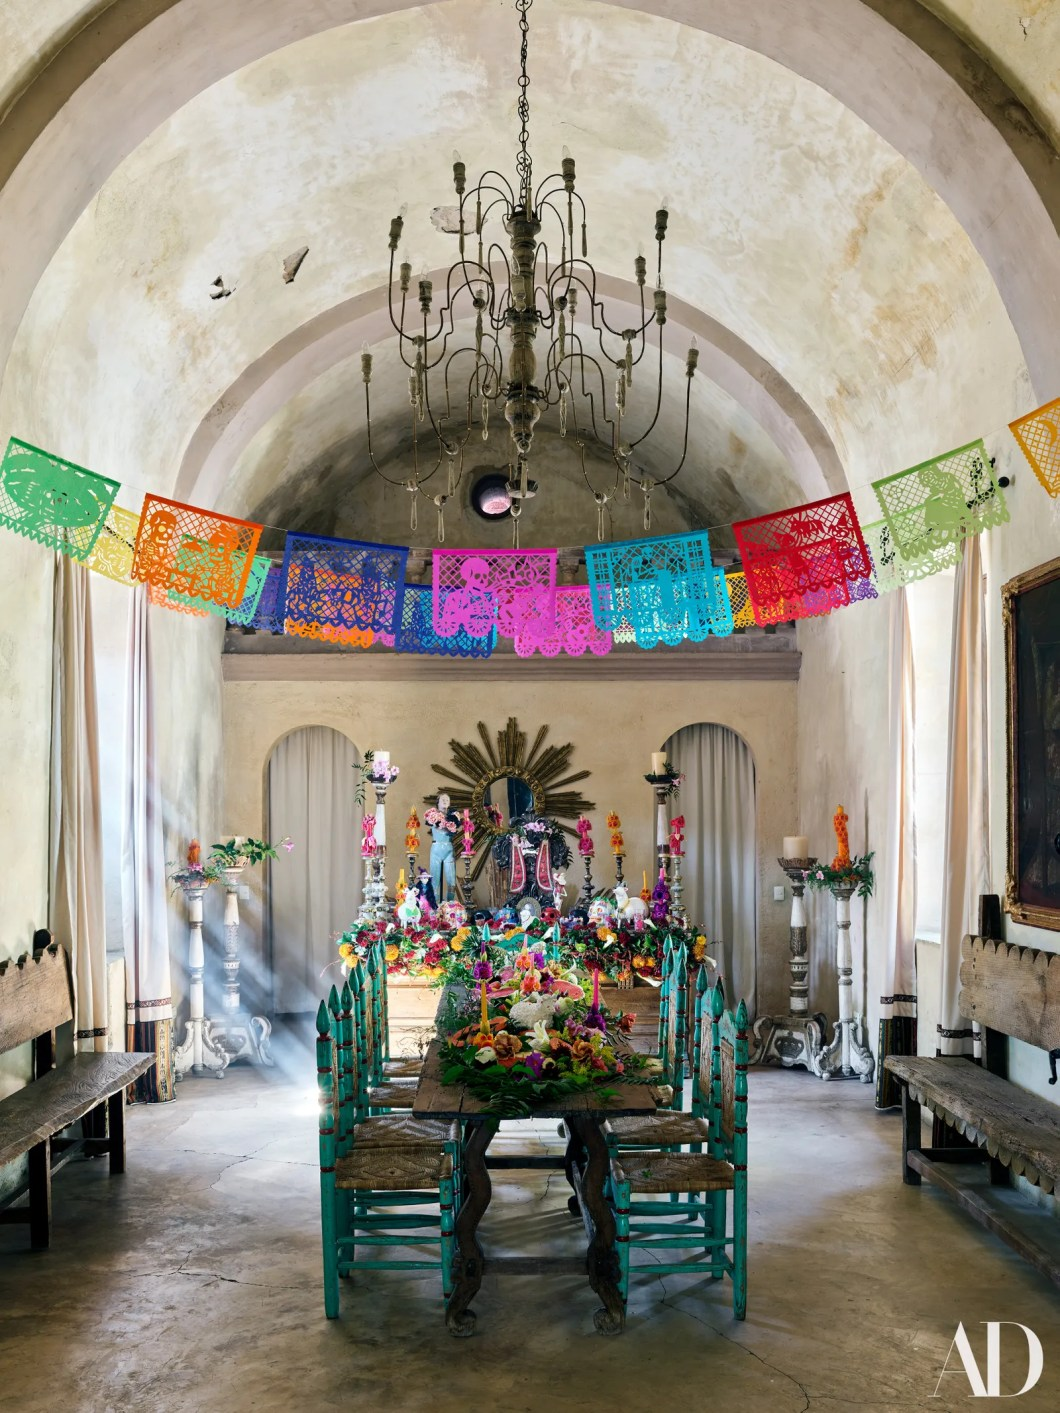 In the chapel vintage Mexican chairs line up at an 18thcentury Spanish colonial table.